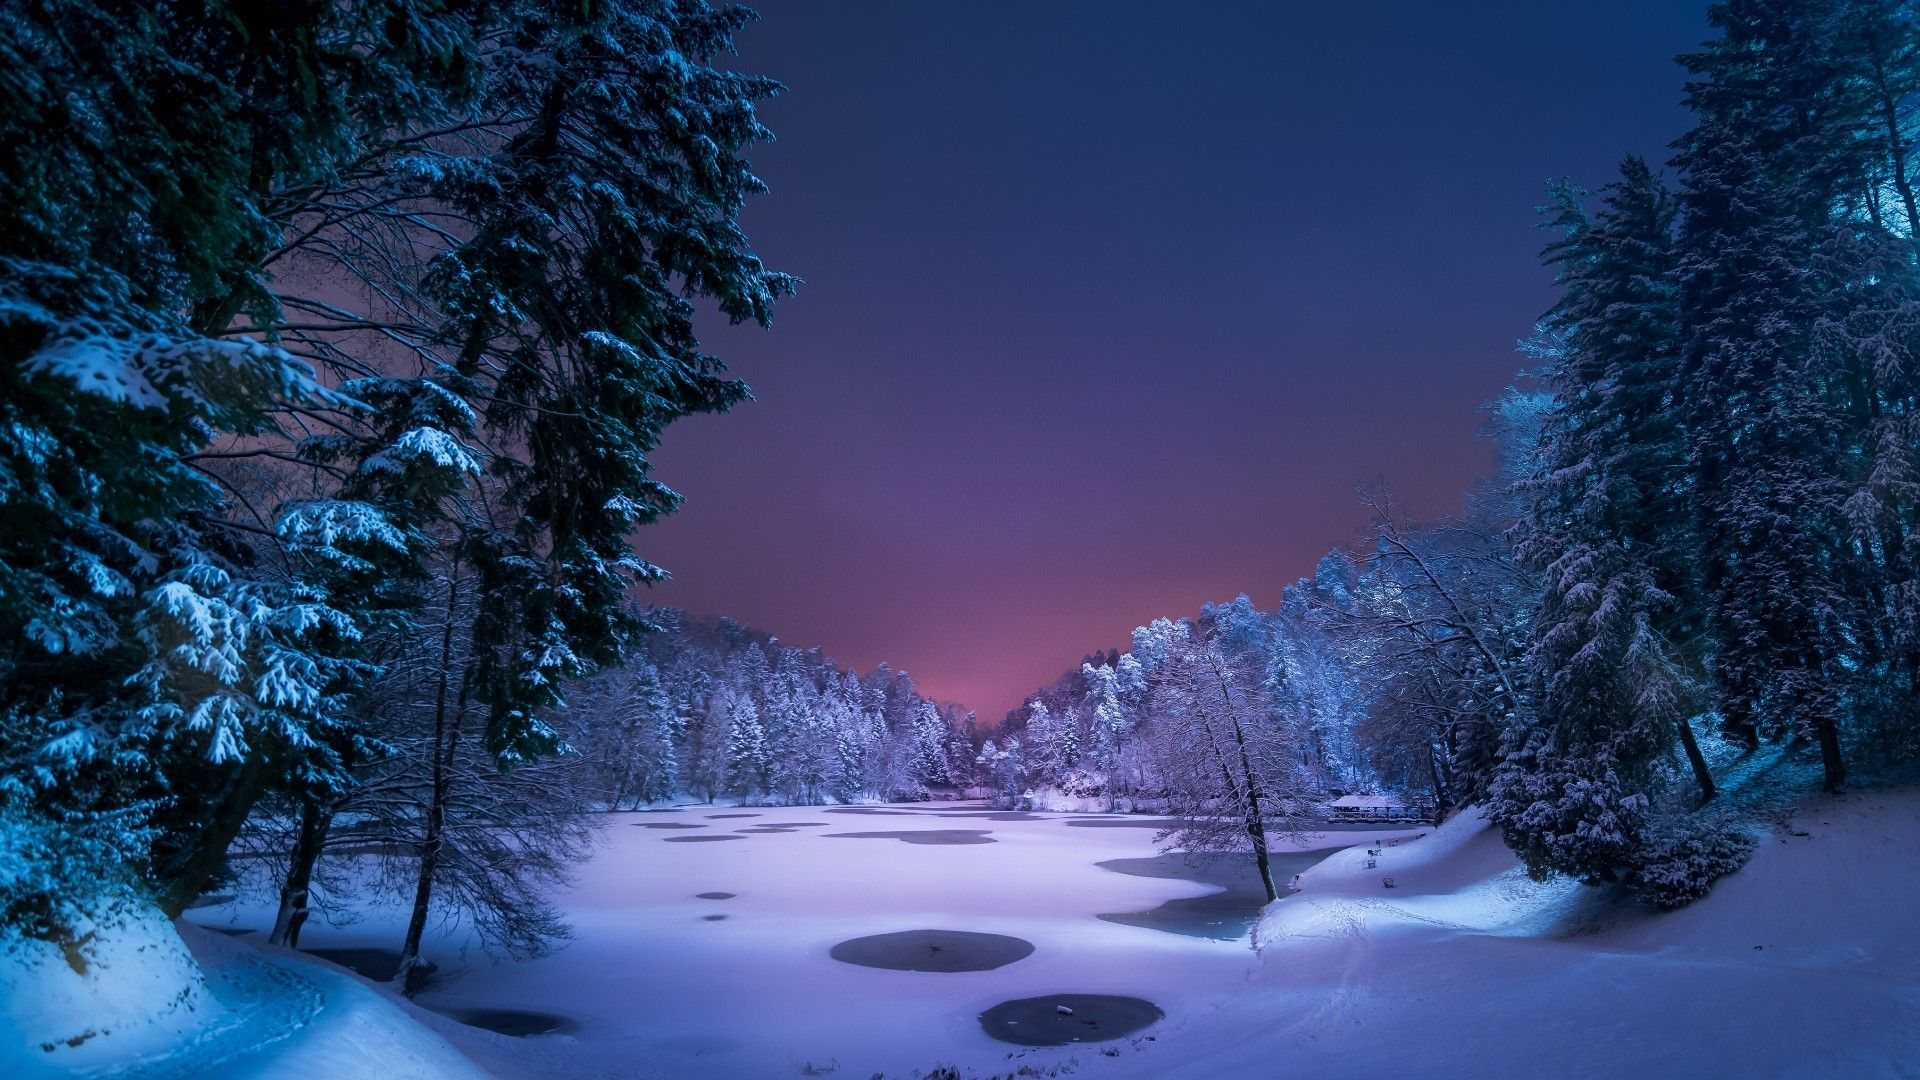 Winter Forest Night Wallpapers Picture On Wallpaper 1080p Hd Winter Landscape Winter Desktop Background Night Landscape